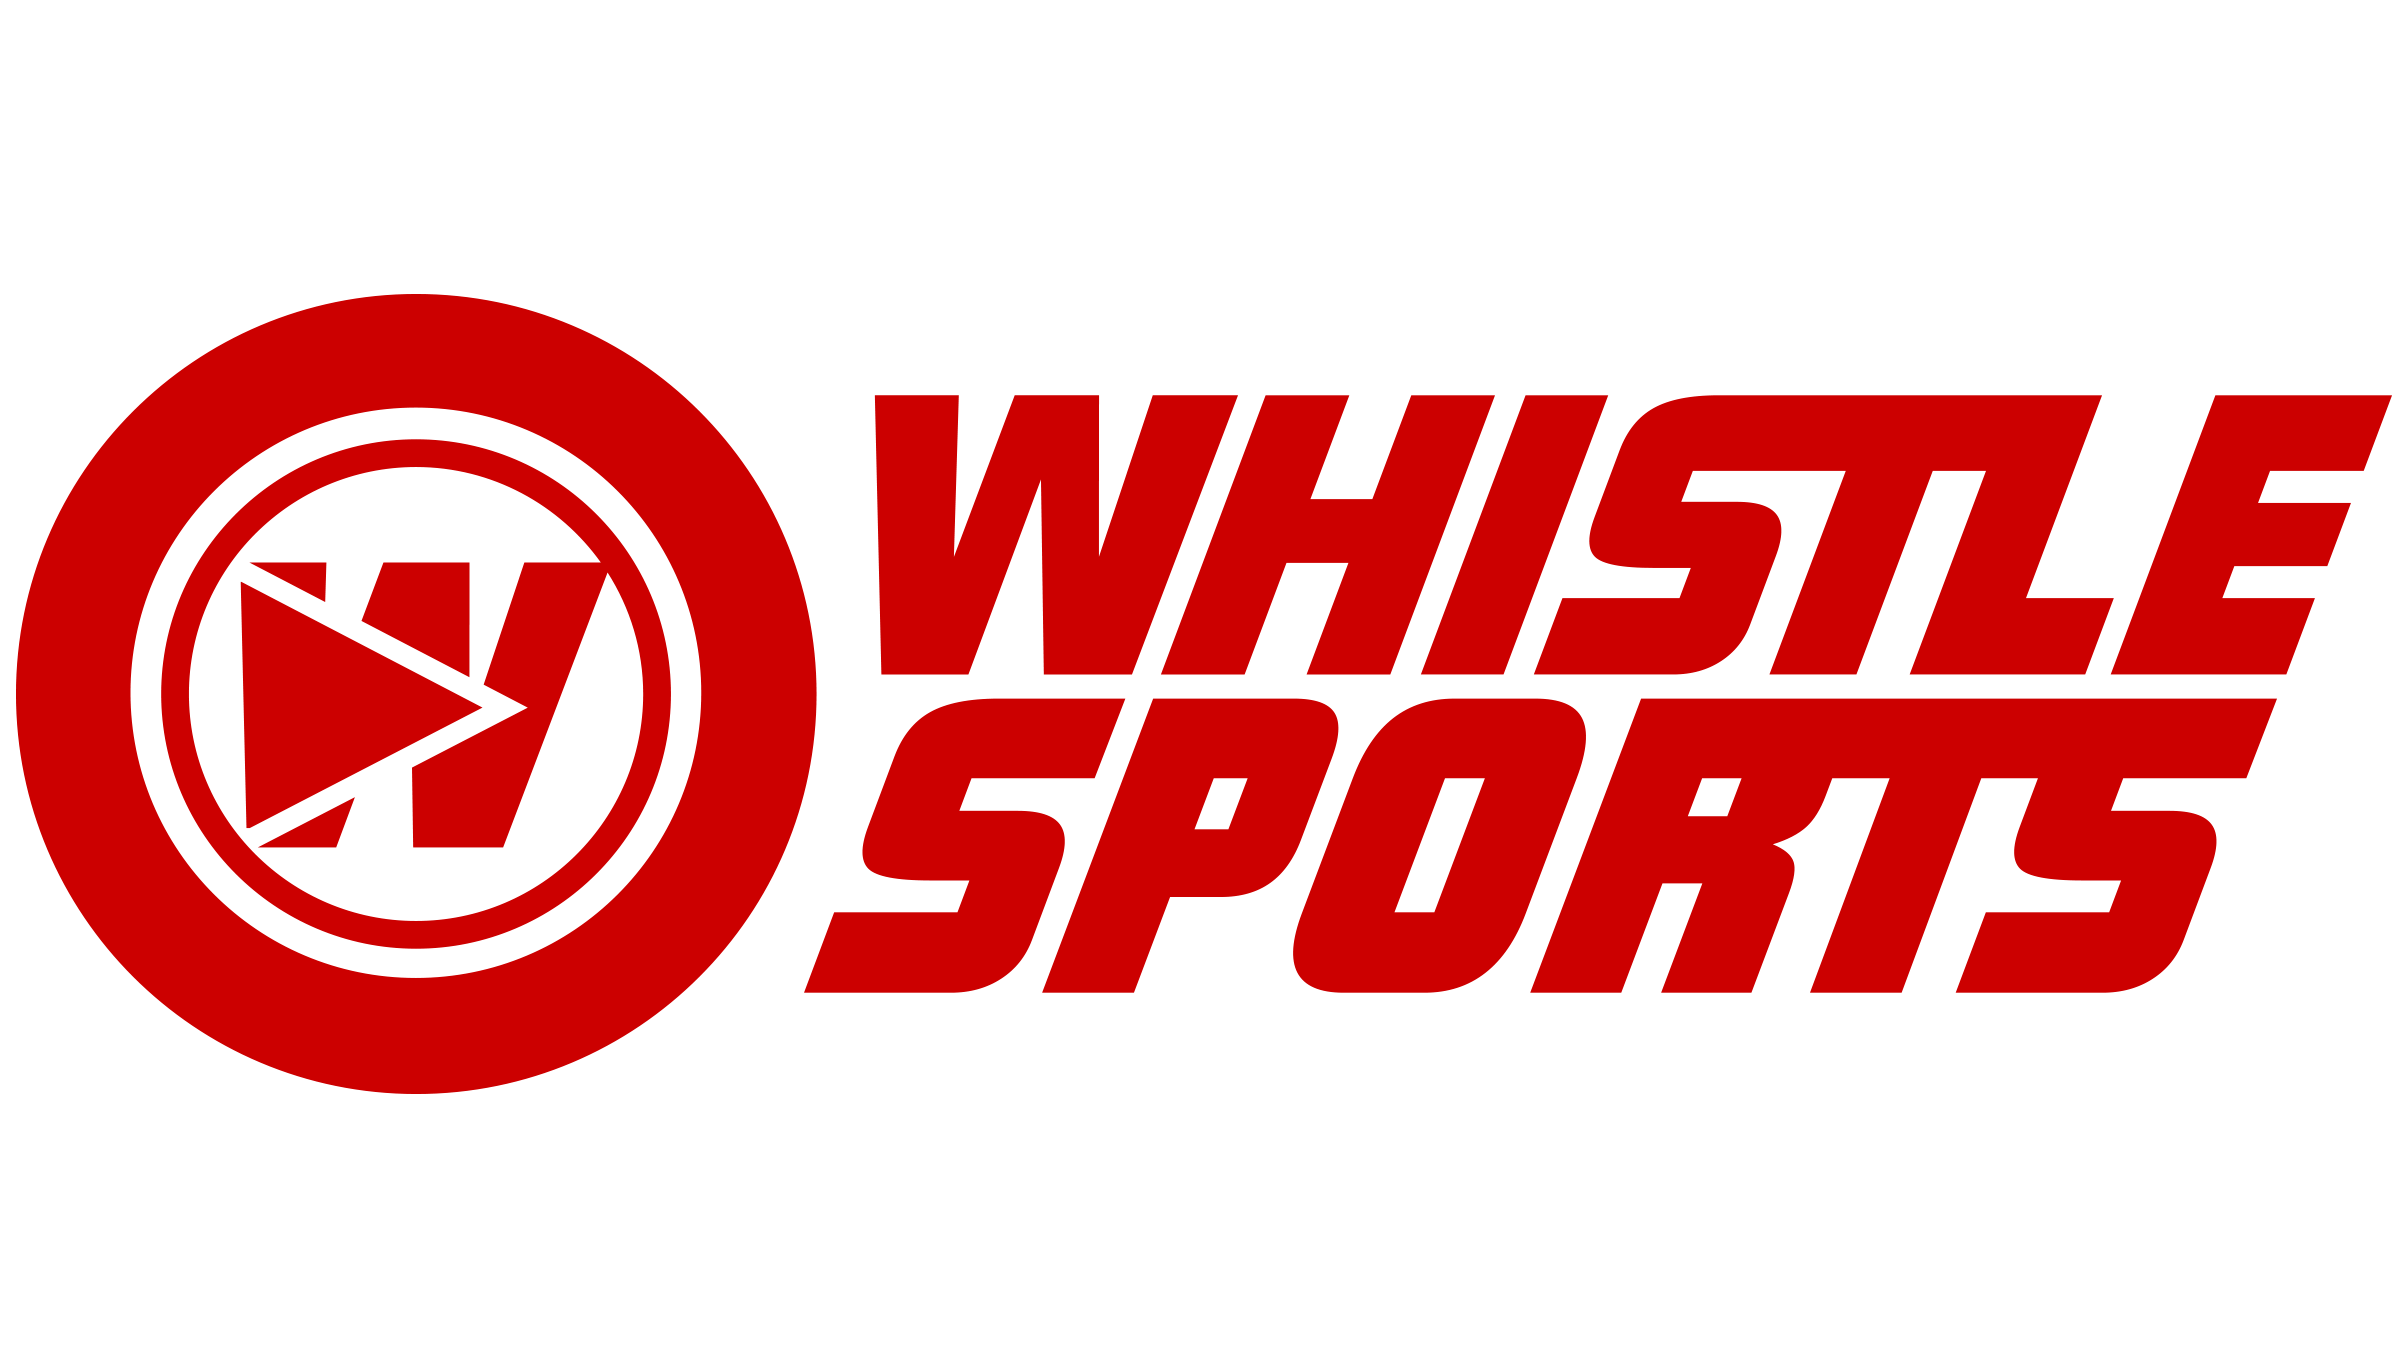 whistlesports_full_red1-e1529600357241.png